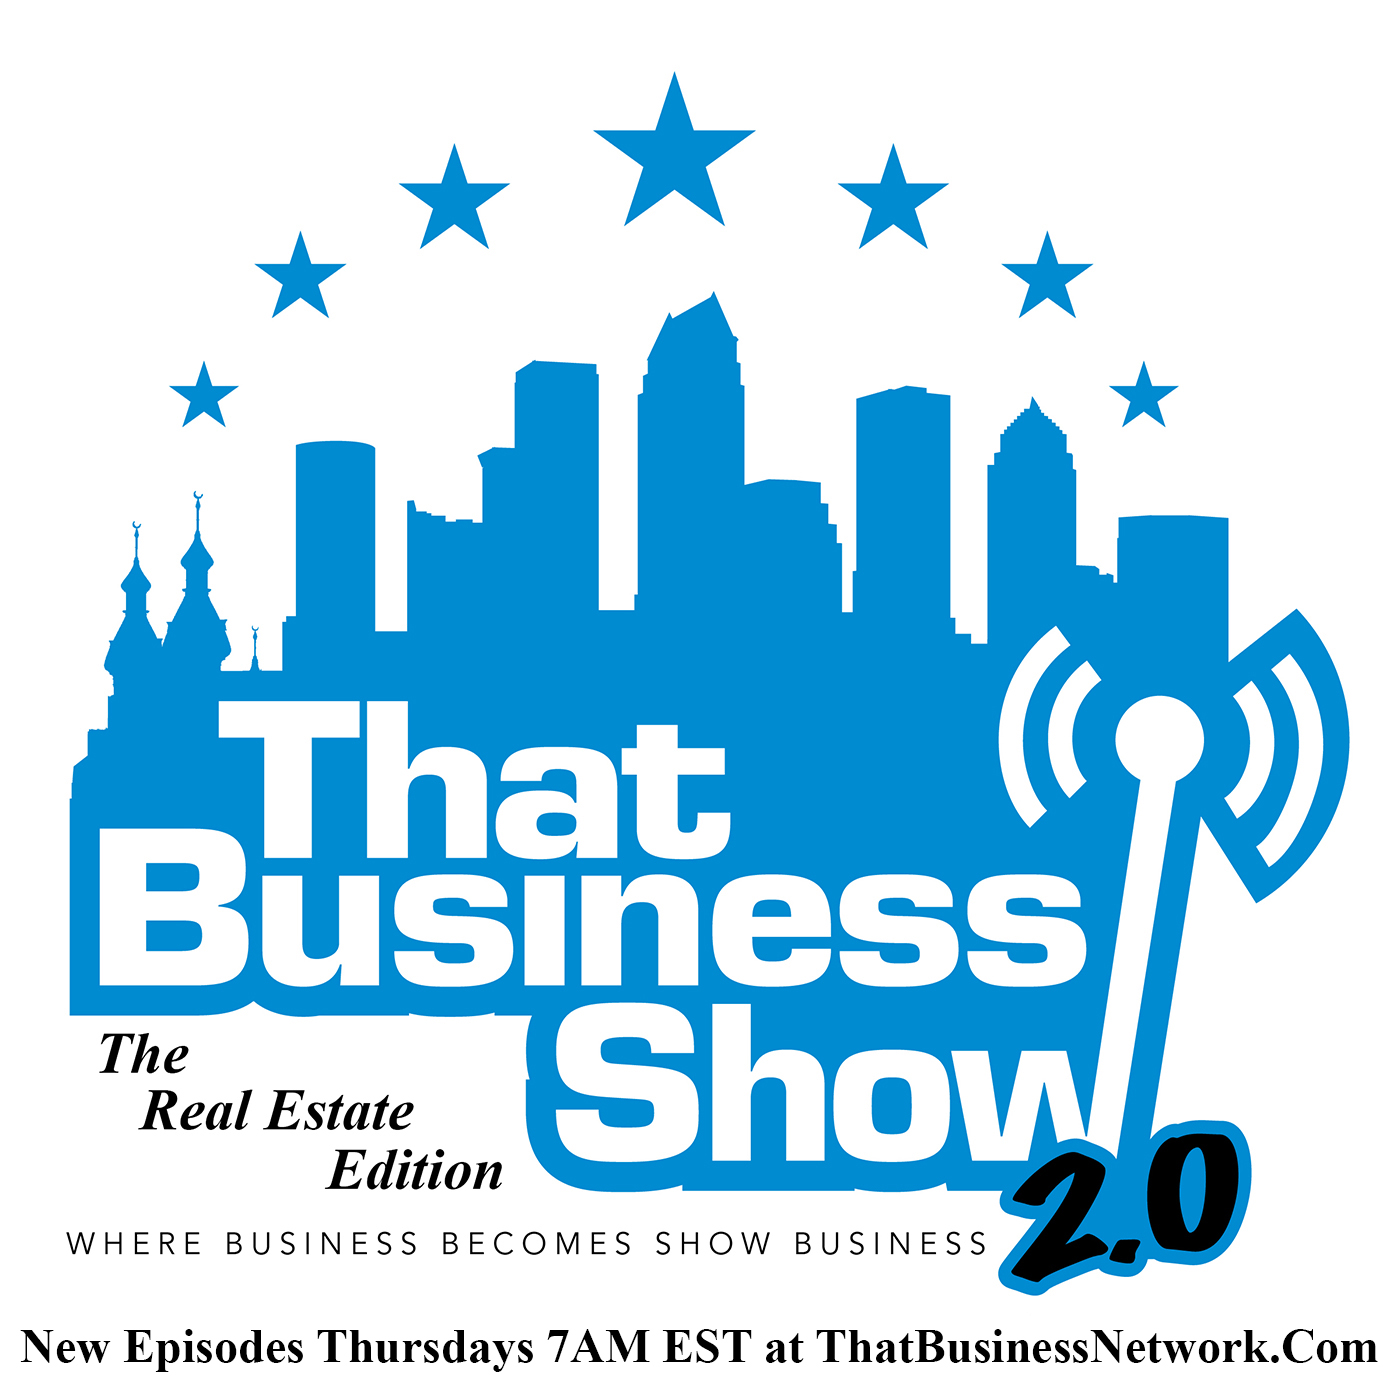 That Business Show 2.0 - The Real Estate Edition